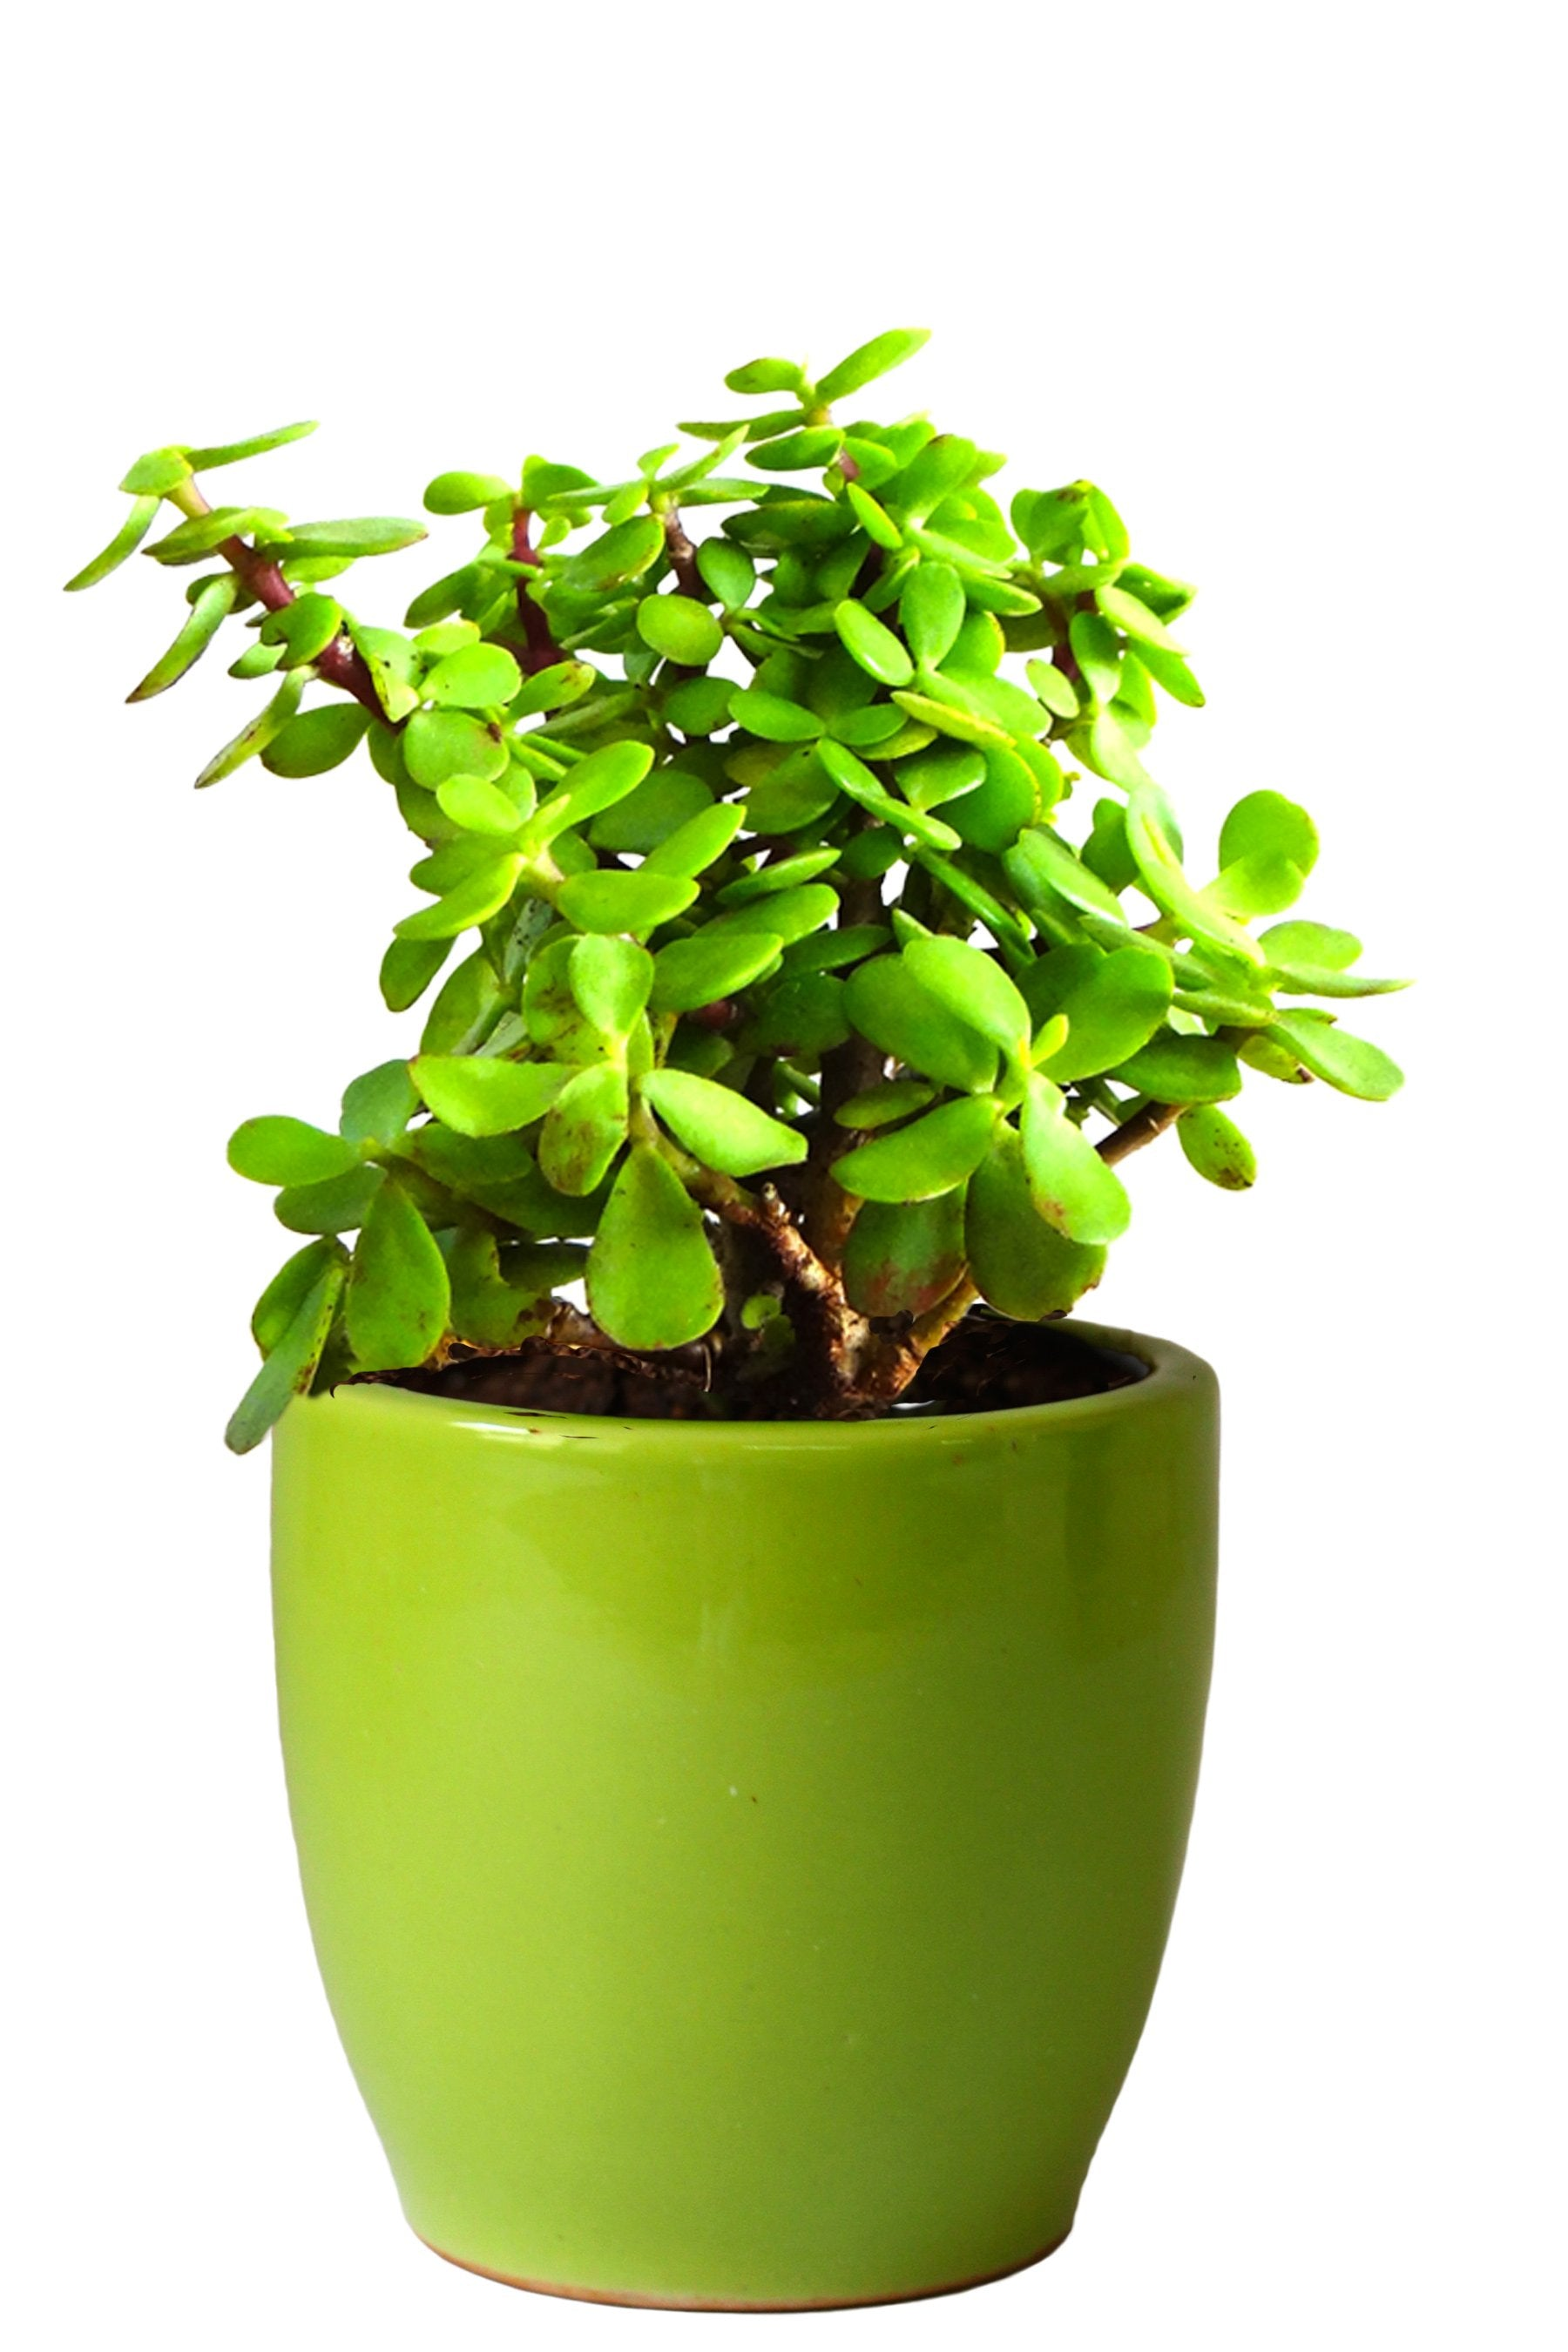 Air Purifying Good Luck Live Natural Plants in Exquisite Ceramic Pots. Best Indoor Plants online in India. Best green gifts for corporate or any occasions. Love plants as gifts. Crassula Jade in Green Pear quality houseplants shipped all over India.